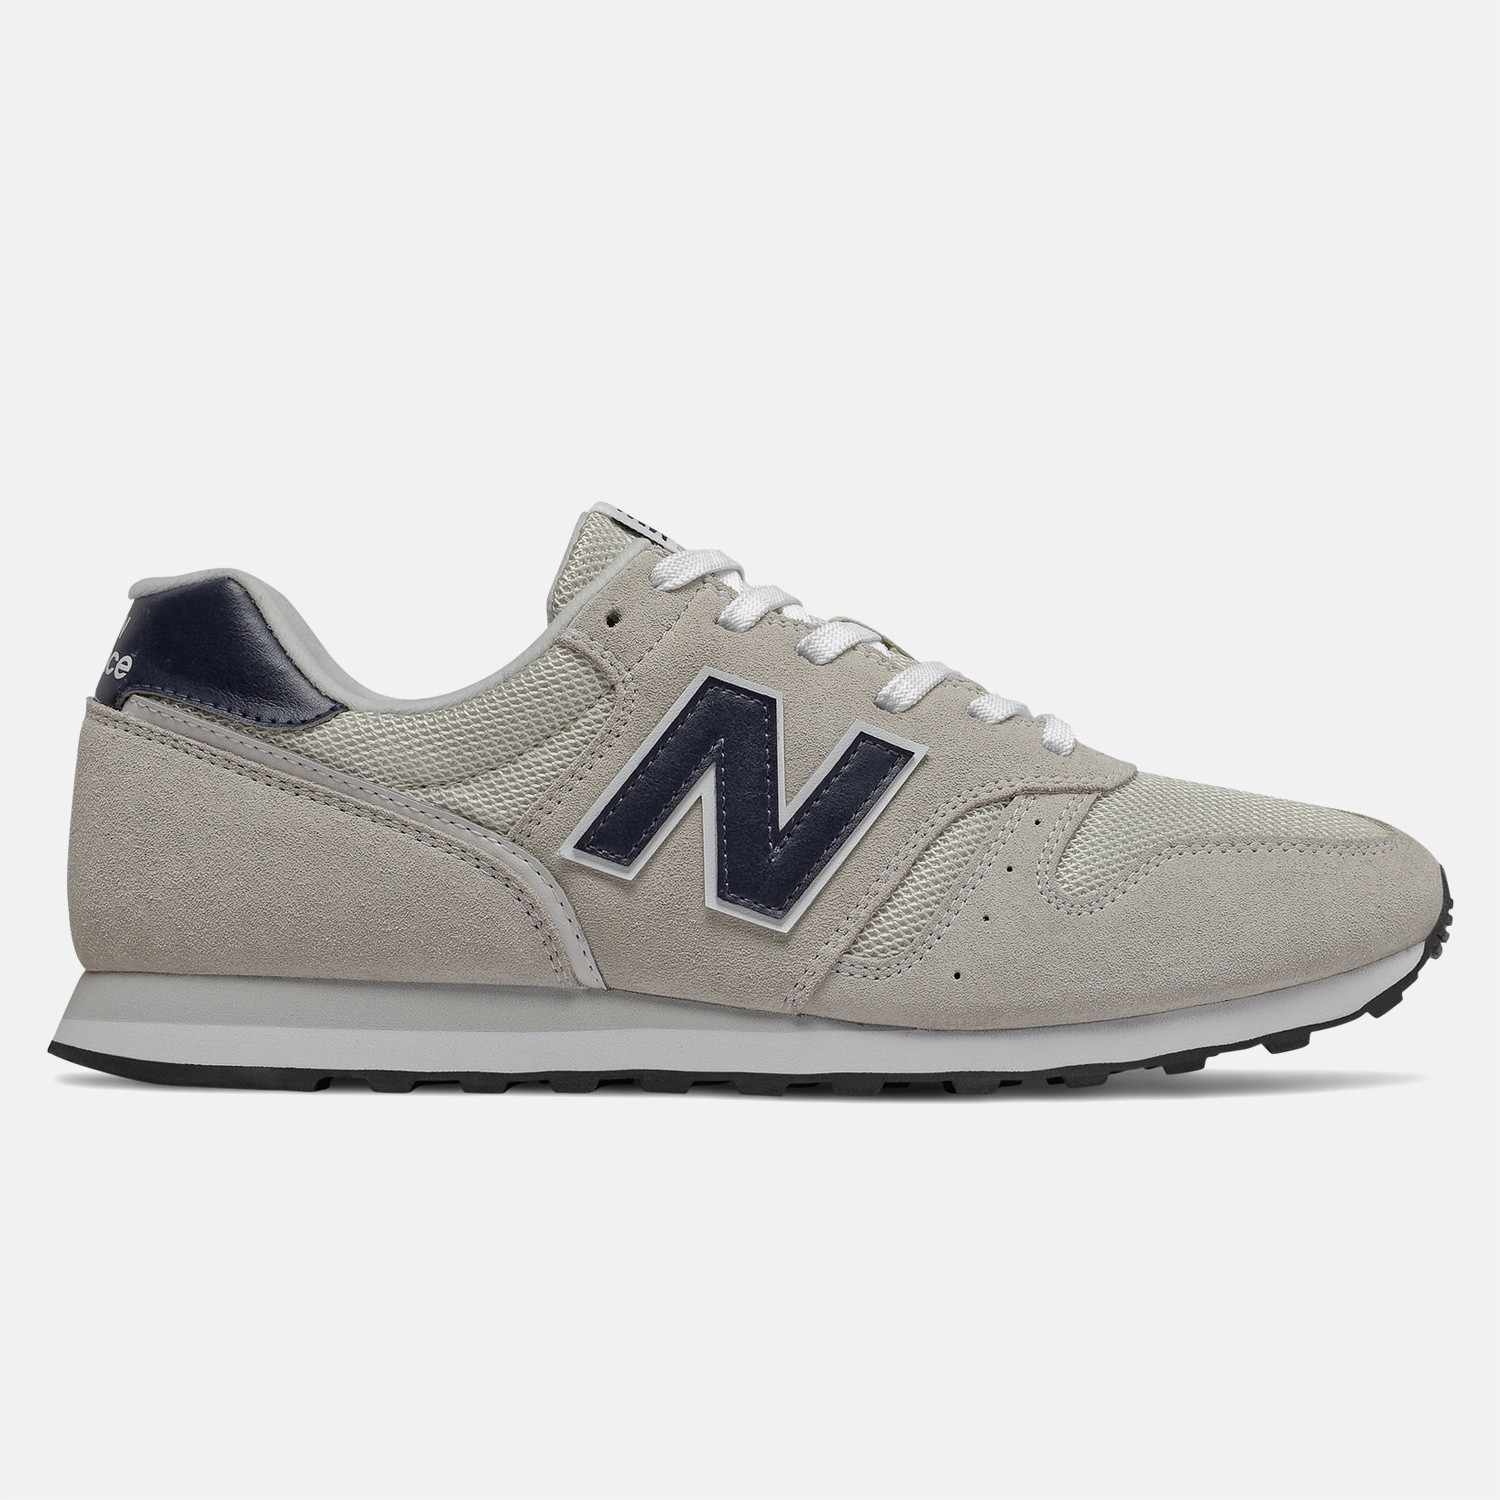 New Balance 373V2 Men's Shoes (9000046965_11977)